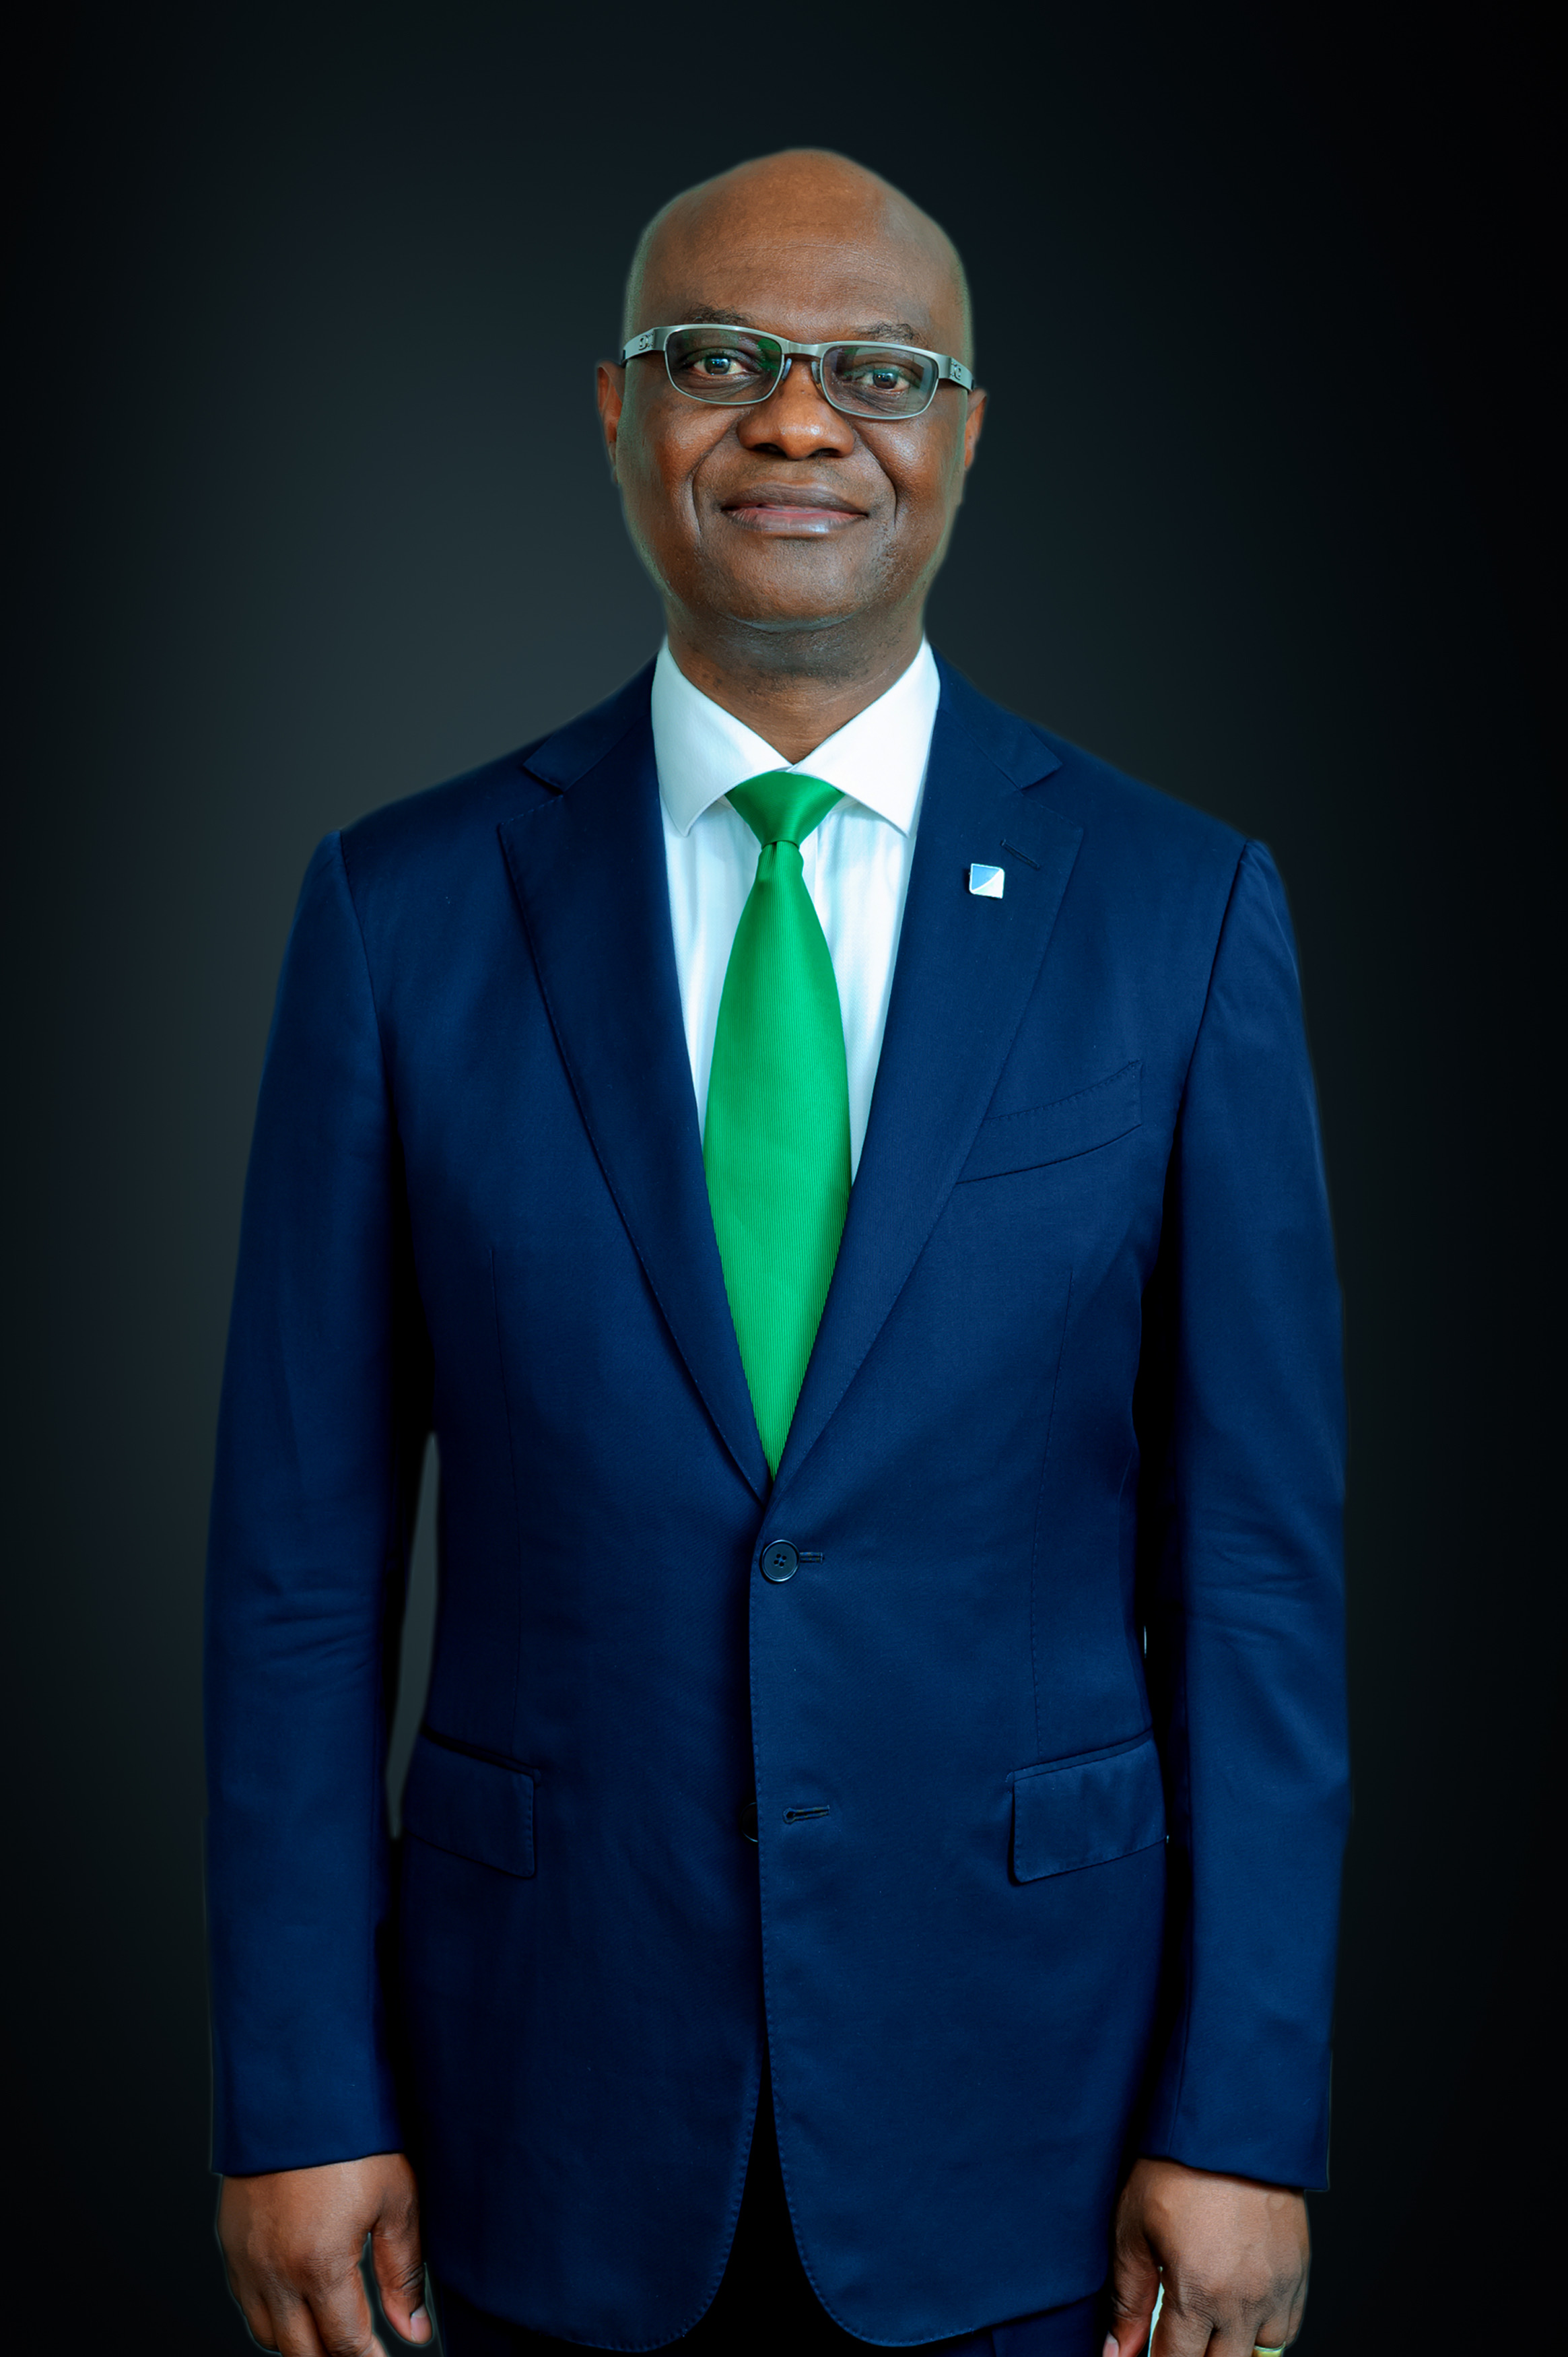 Mr. Kevin Ugwuoke, appointed as Executive Director, Chief Risk Officer of Fidelity Bank